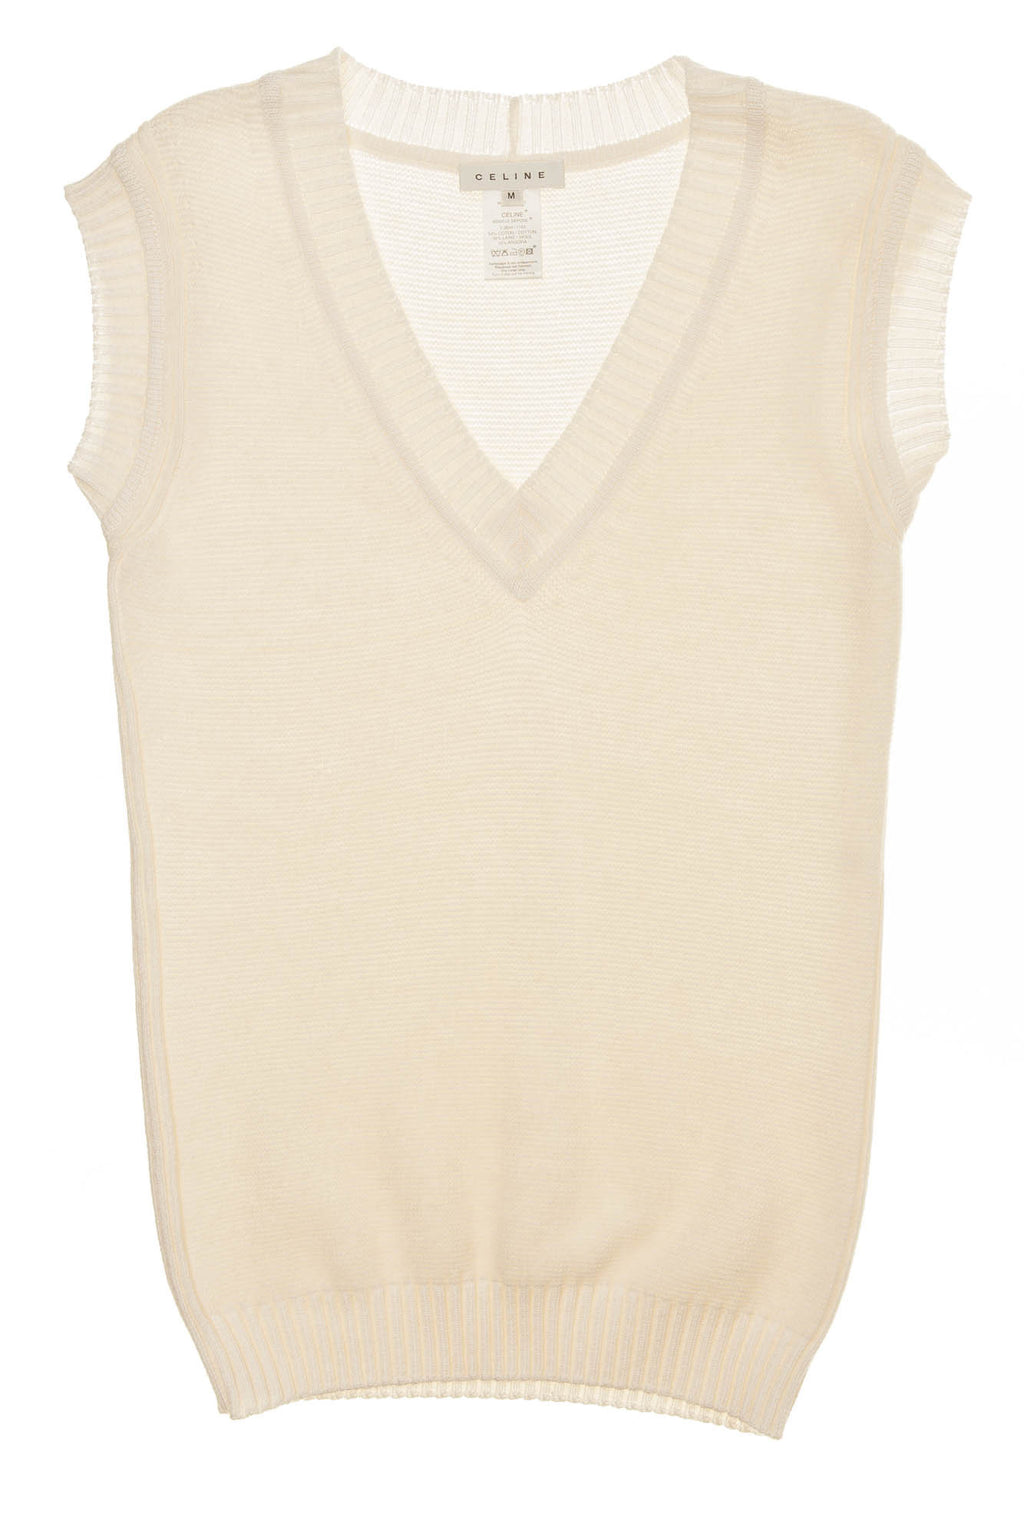 Celine - White Sleeveless Knit Sweater - M